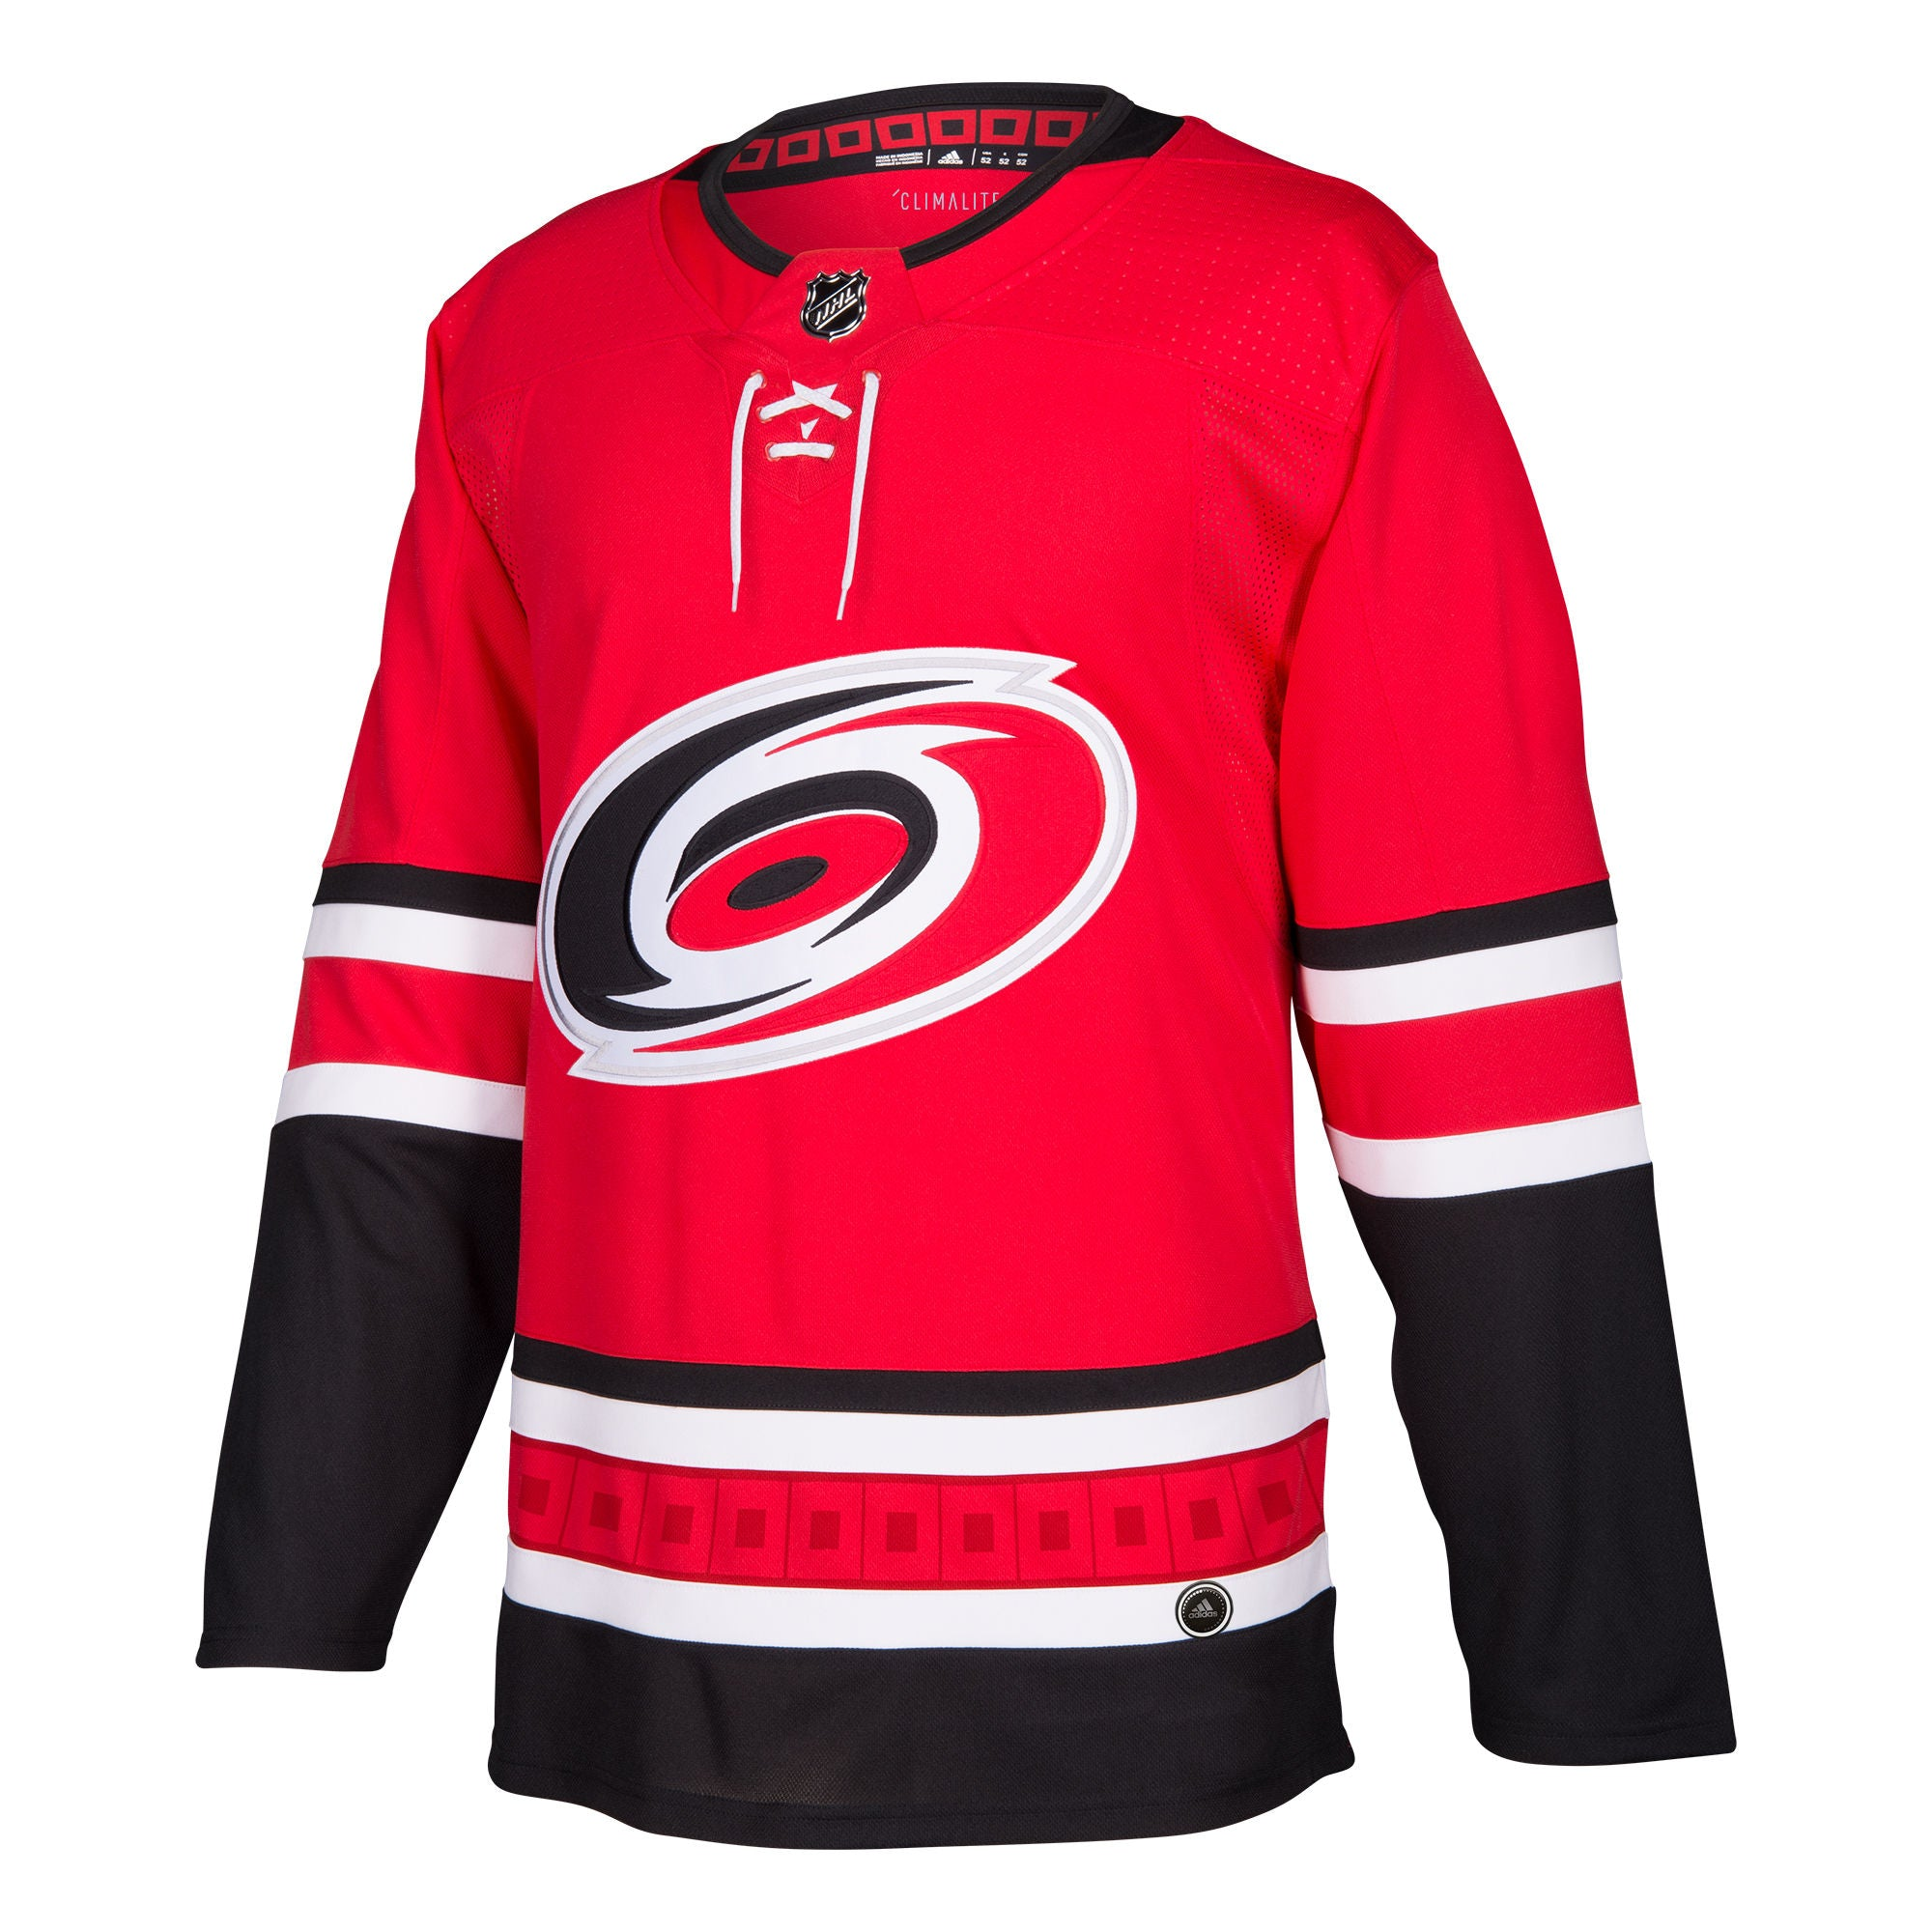 46ad45f2a ... official store carolina hurricanes nhl authentic pro home jersey a7fda  0f63a